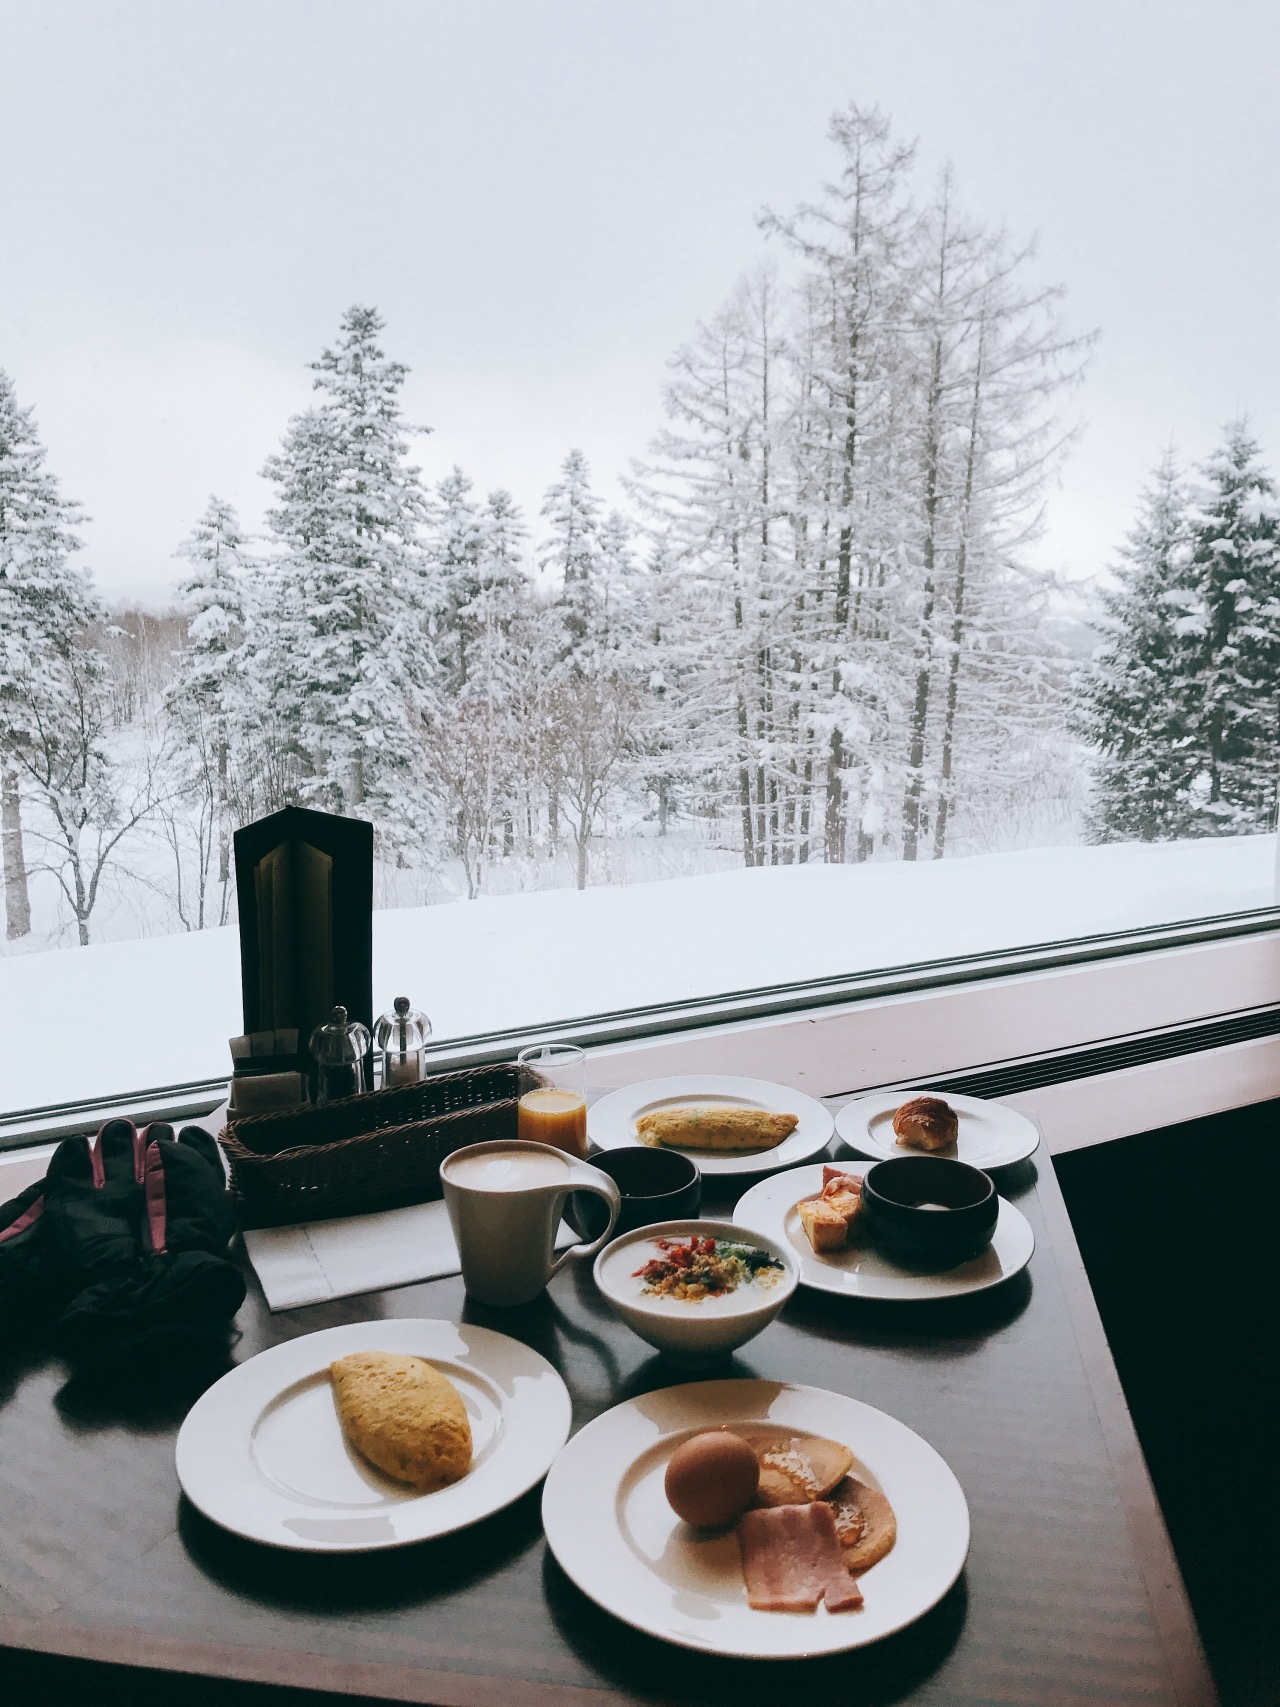 Breakfast at Hilton Niseko Village